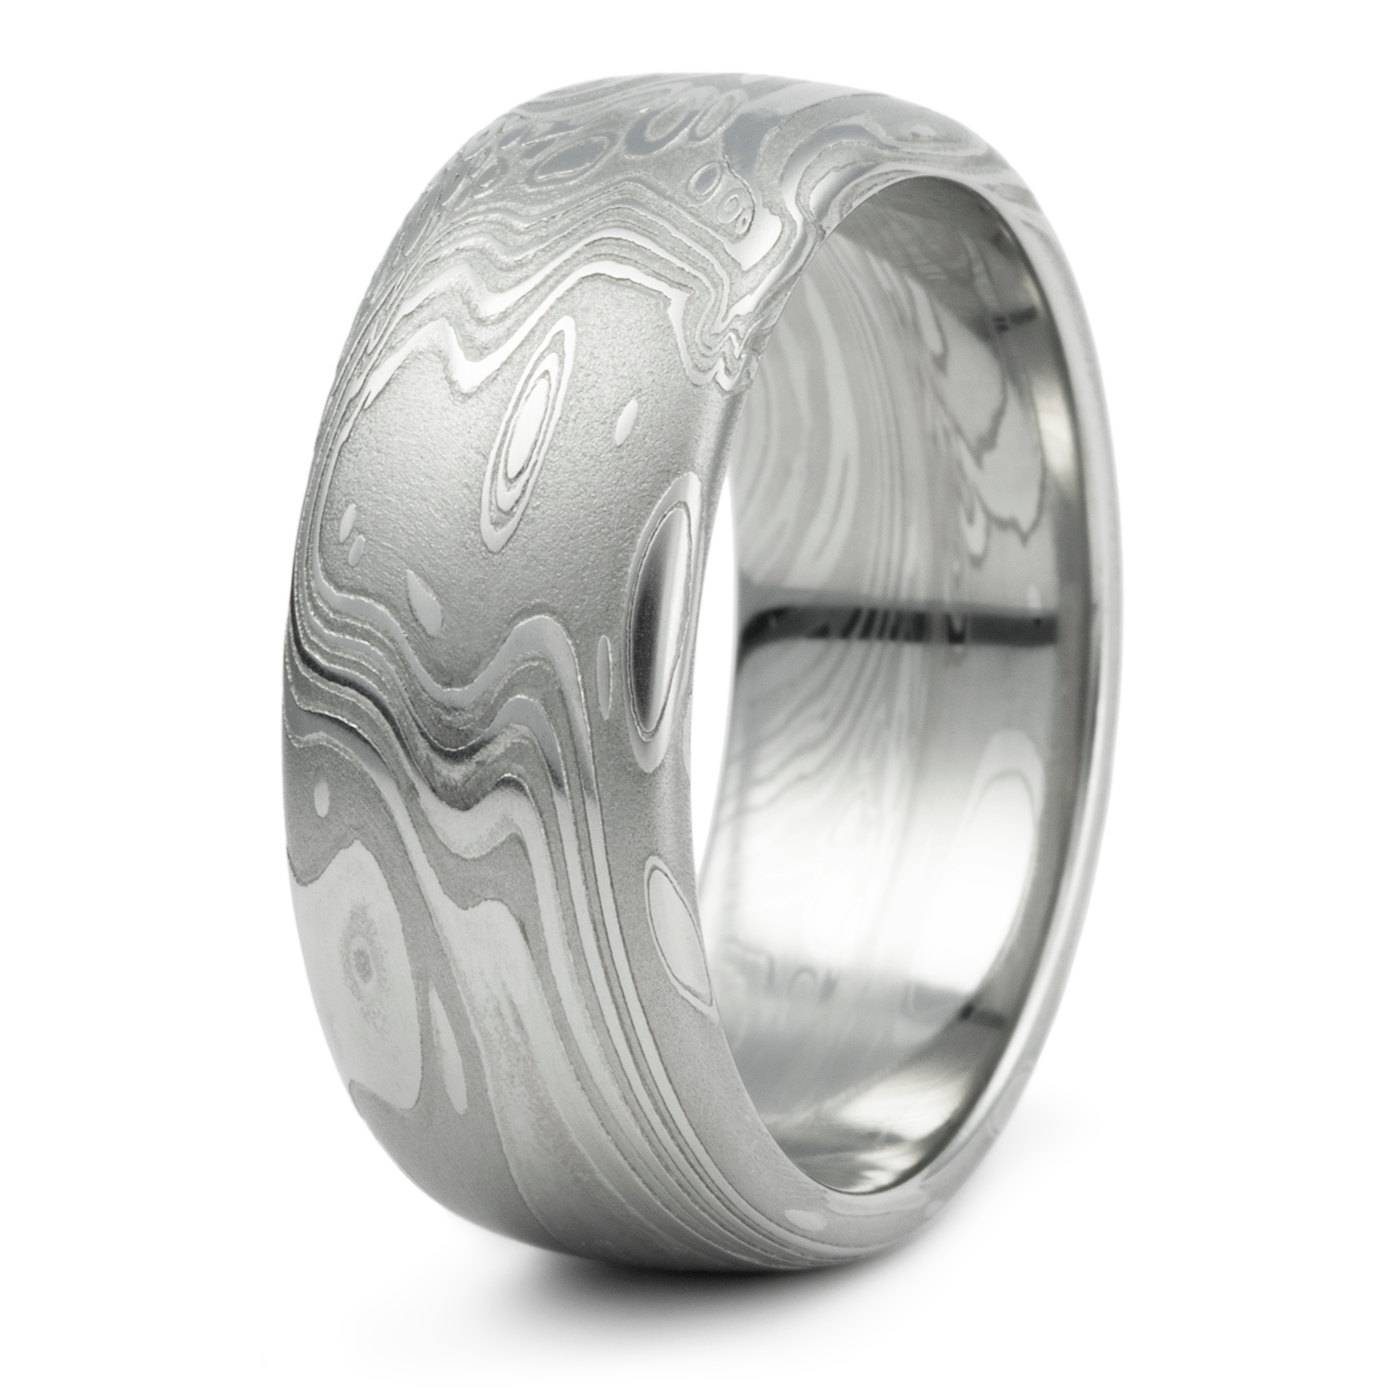 Damascus Steel Domed Wedding Ring Men's Unique Organic With Regard To Damascus Steel Men's Wedding Bands (View 3 of 15)